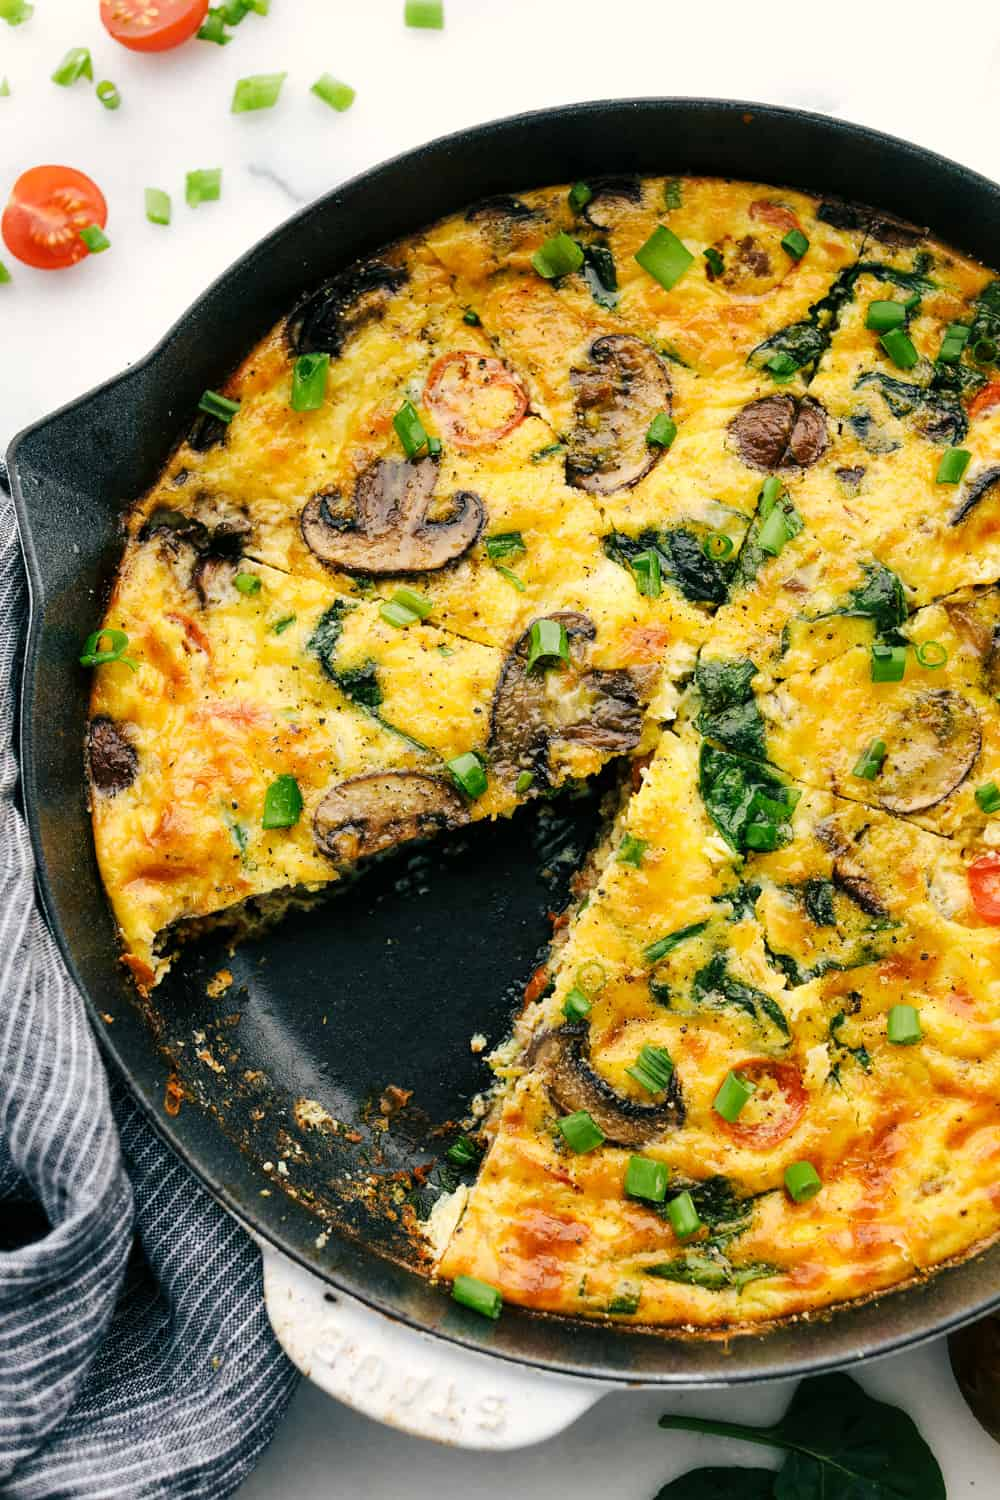 Breakfast frittata cooked on a skillet with a slice of frittata missing off of it.